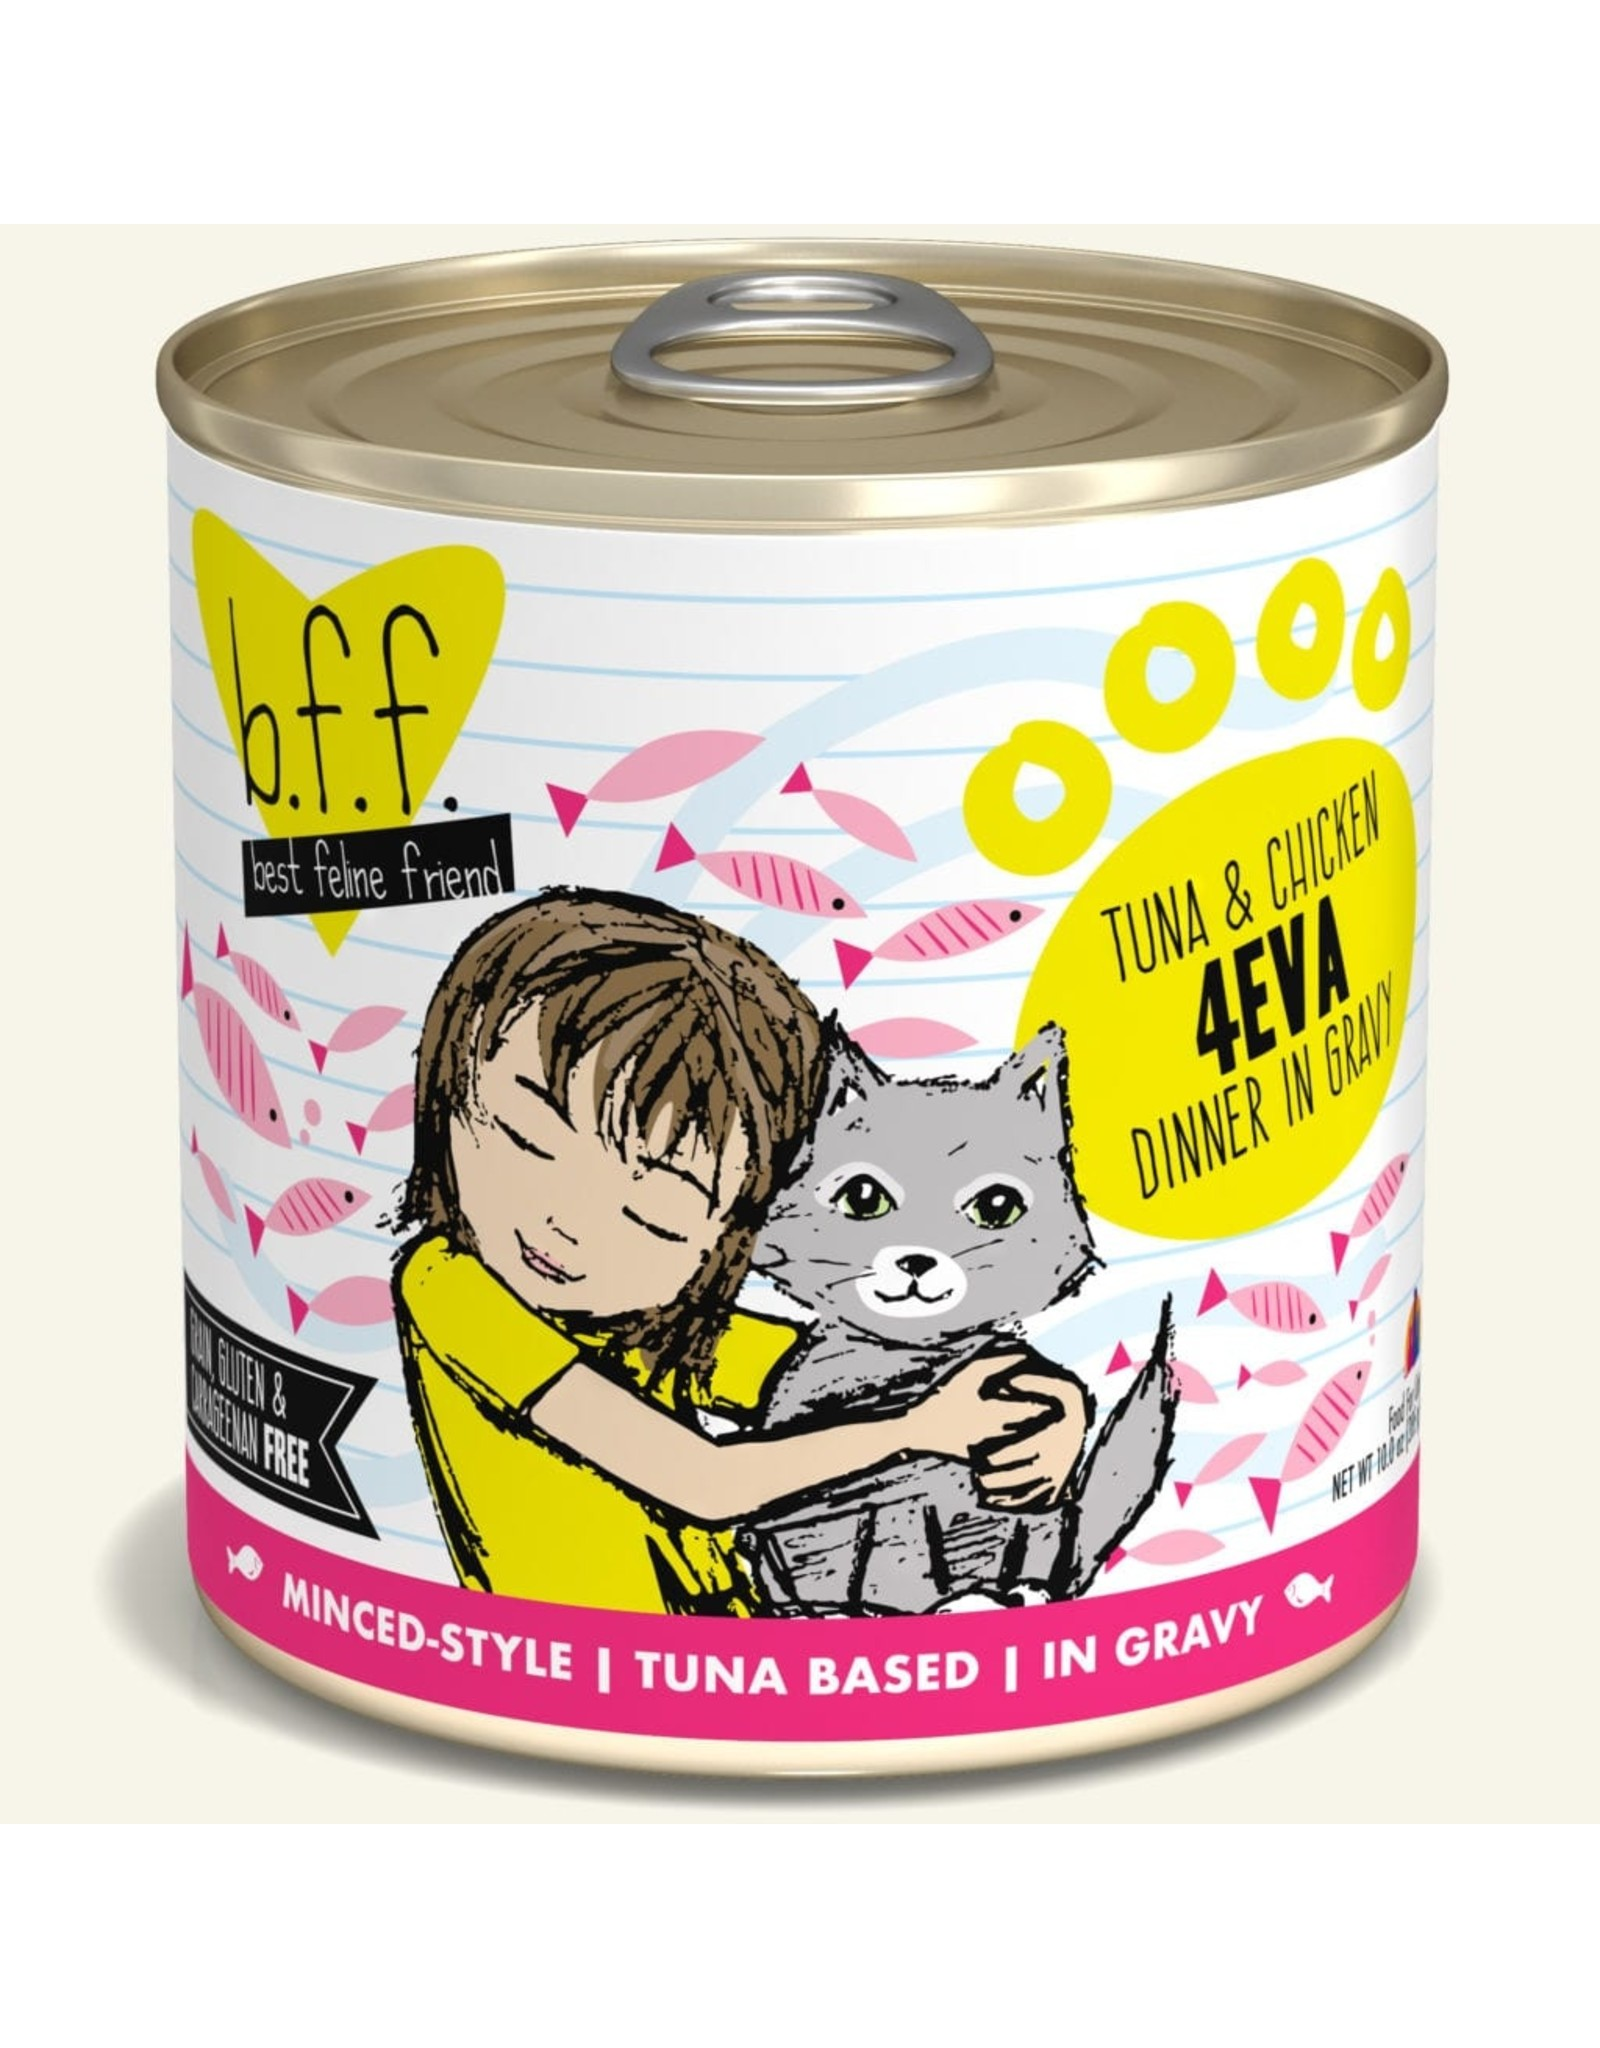 Weruva BFF Weruva B.F.F. Best Feline Friend Originals Wet Cat Food 4Eva Tuna & Chicken Dinner in Gravy 10oz Can